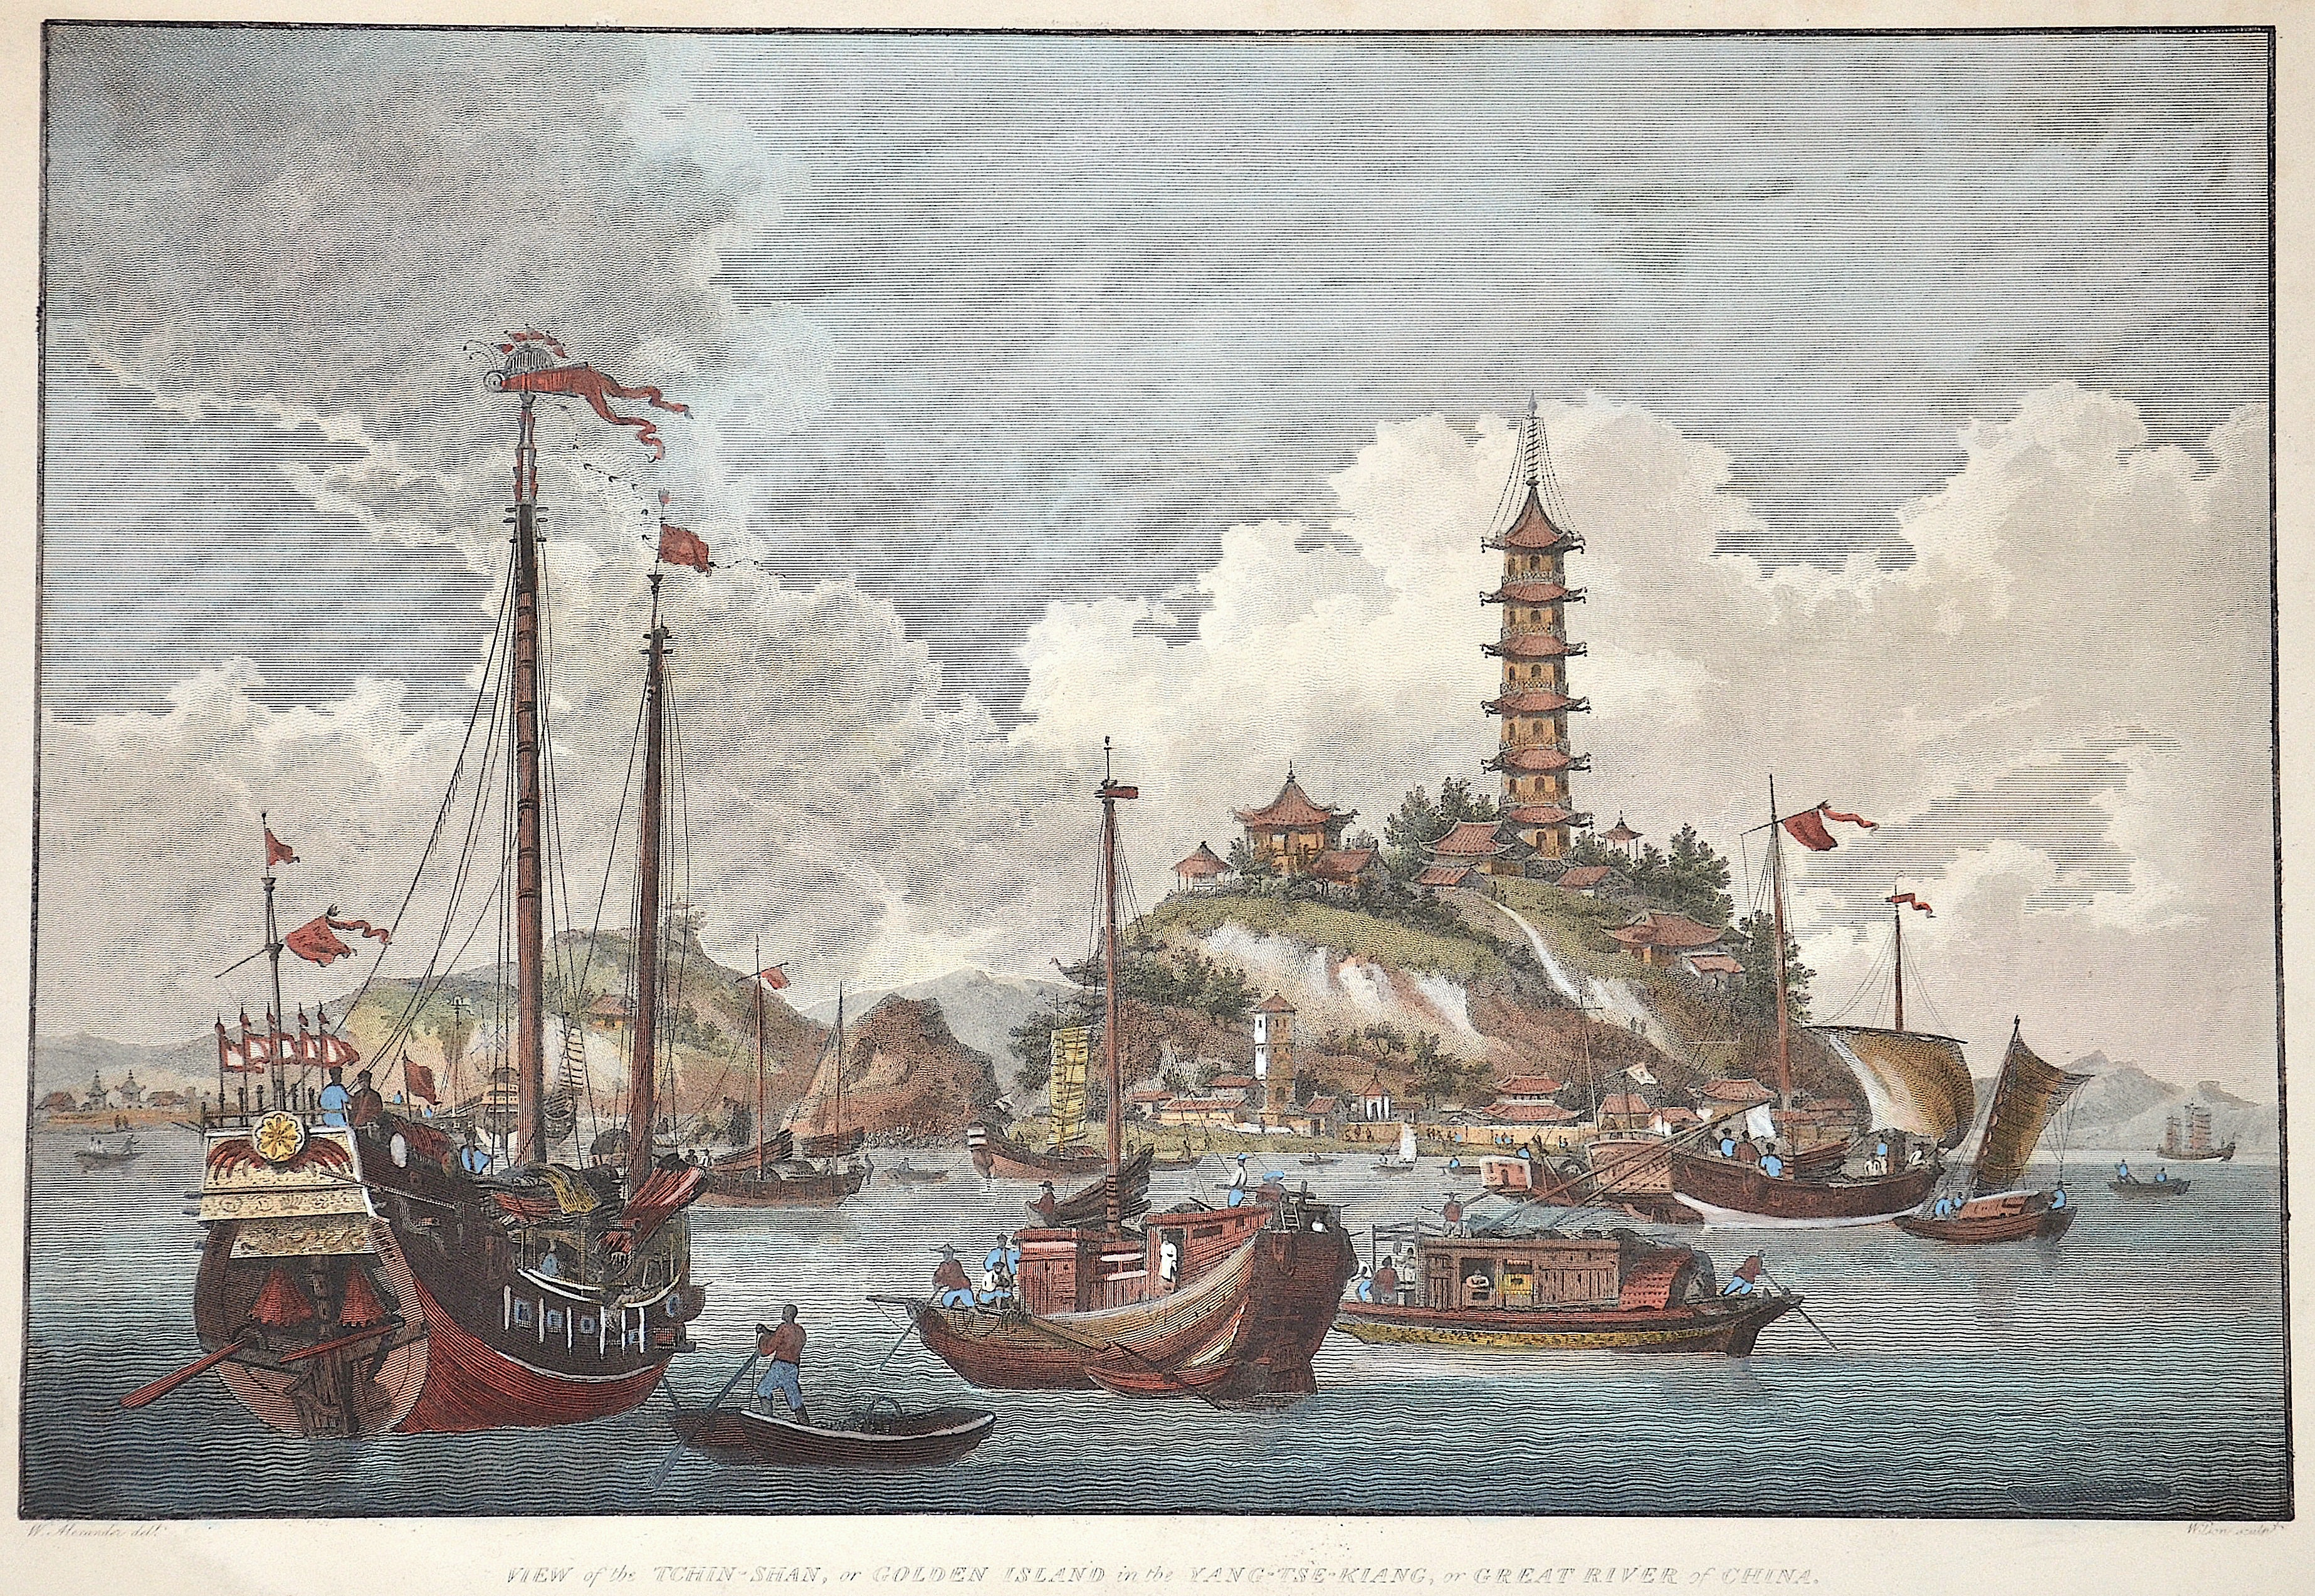 Nicol  View of the Thin-Shan, or Golden Island in the Yang Tse Kiang or Great River of China